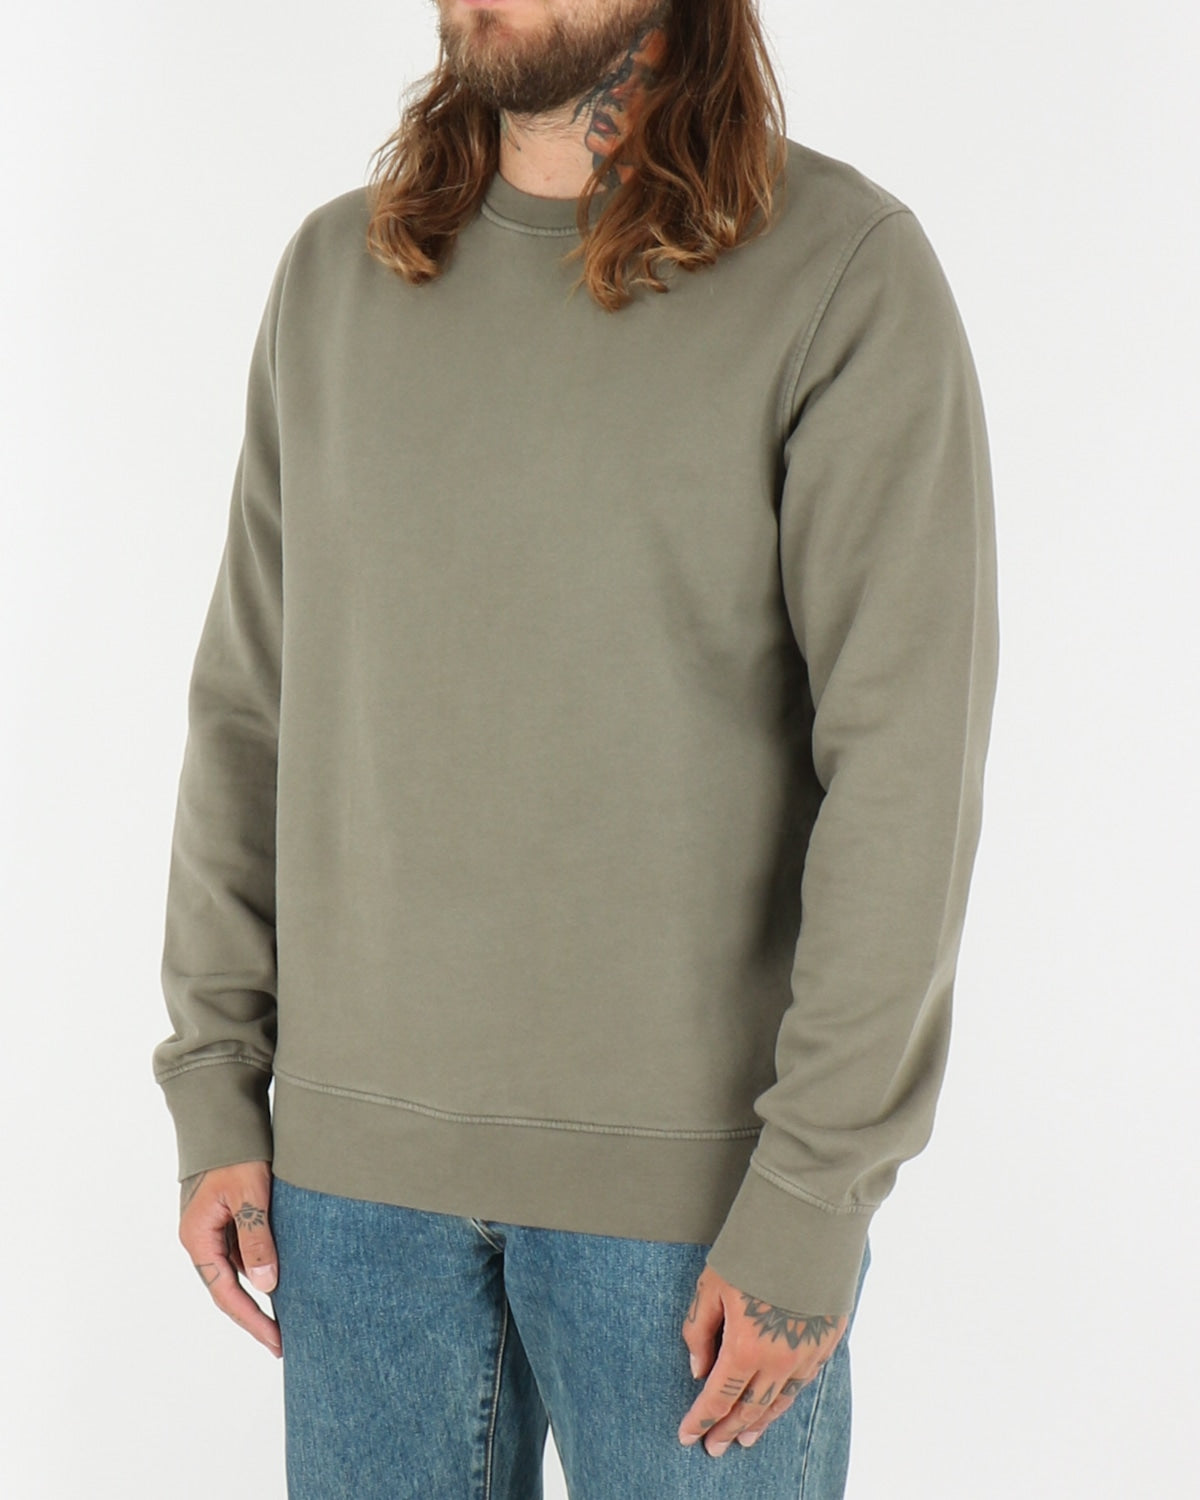 colorful standard_classic organic crew neck_dusty olive_2_2